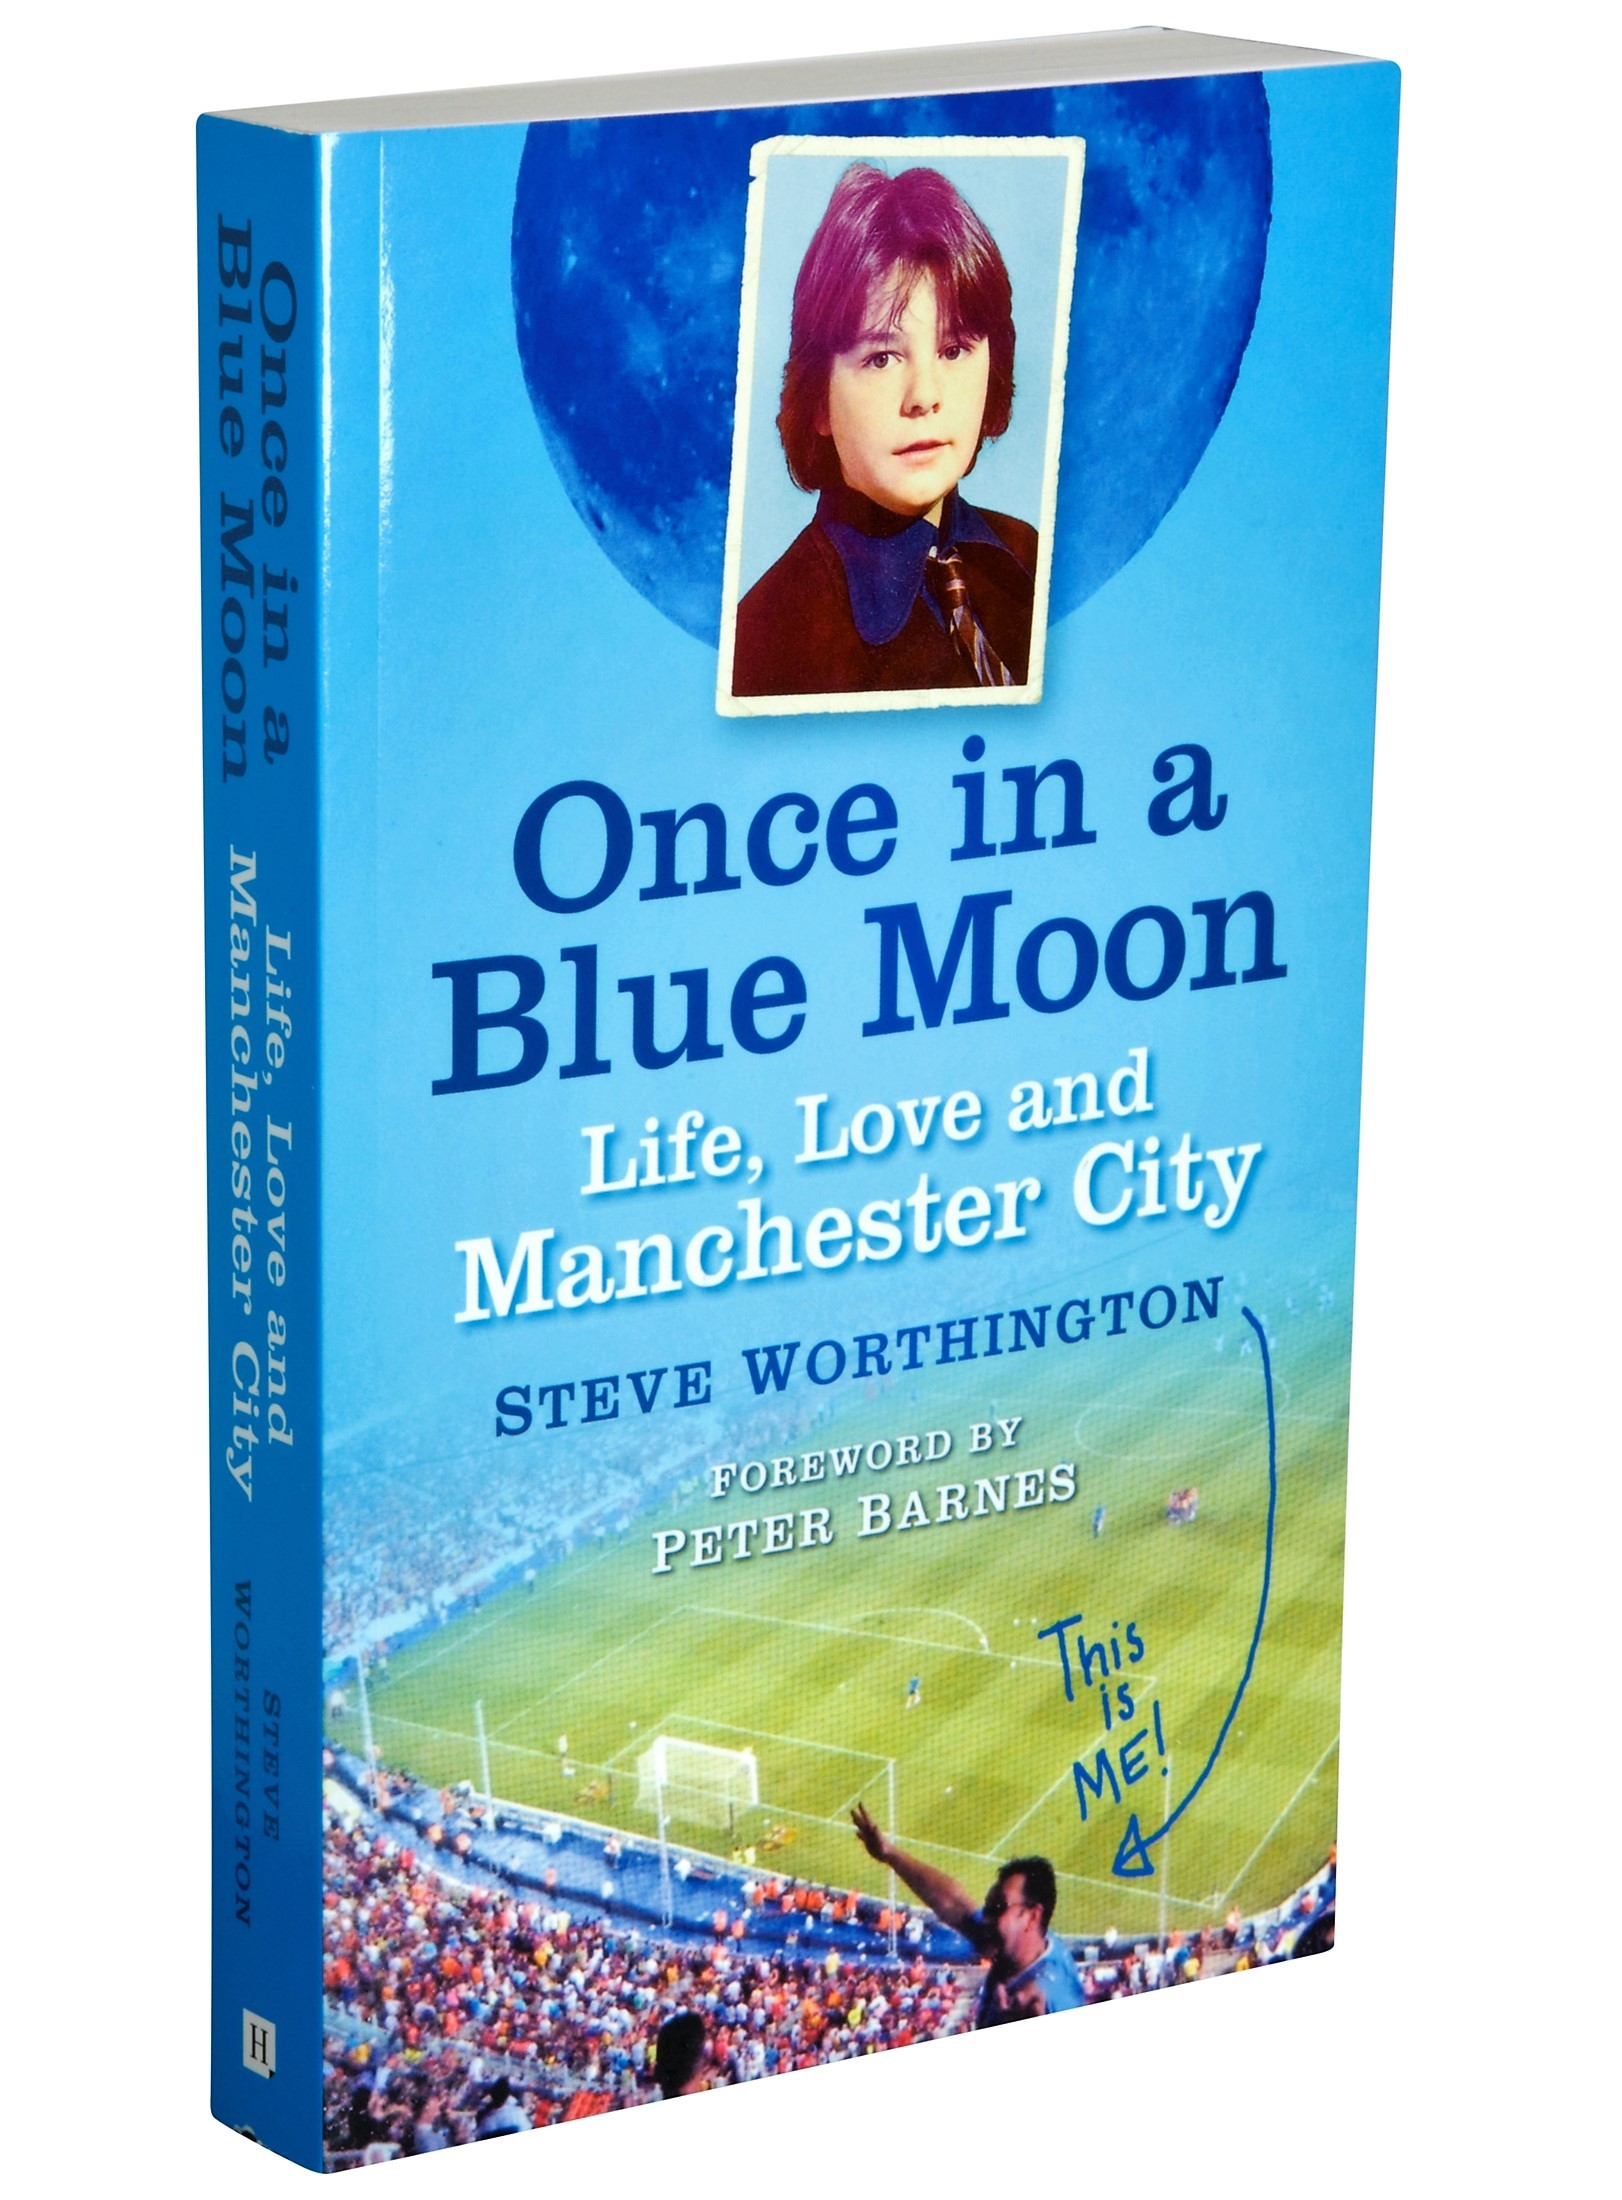 Steve Worthington: Once in a Blue Moon, Life, Love and Manchester City.